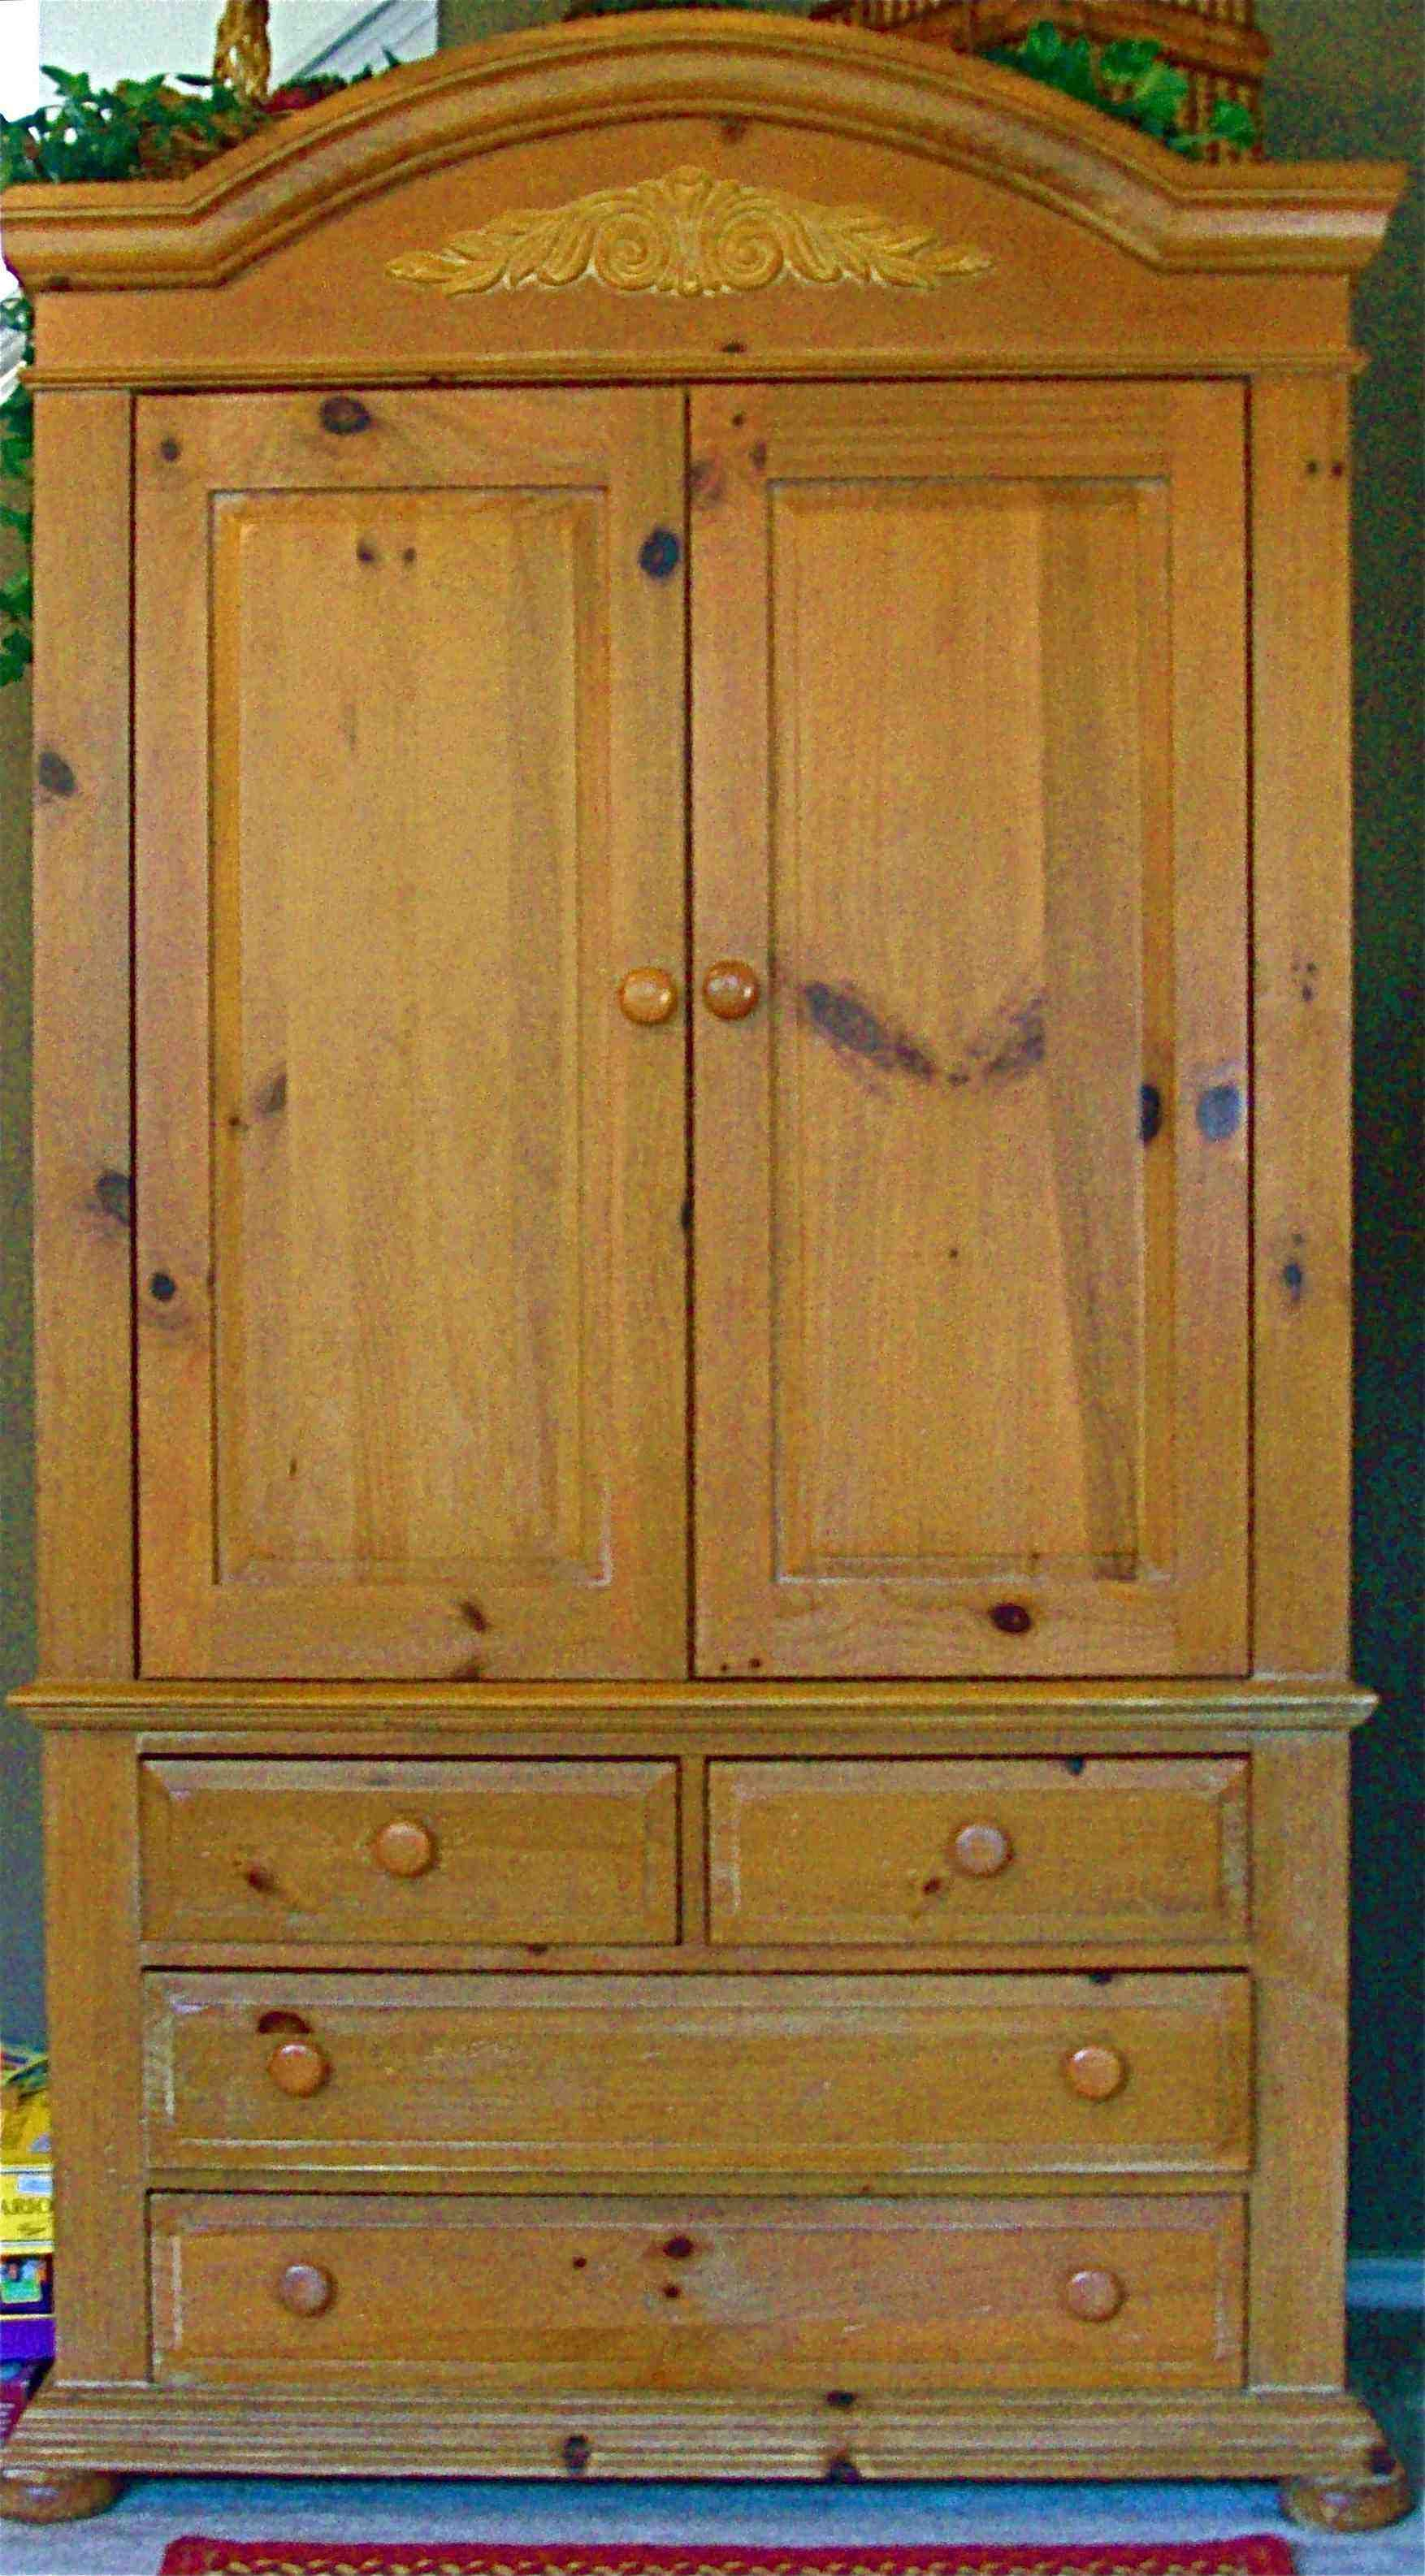 BROYHILL FONTANA TV ARMOIRE In FURNITUREANDMOREu0027s Garage Sale For $300.00.  Solid Pine TV Armoire 2